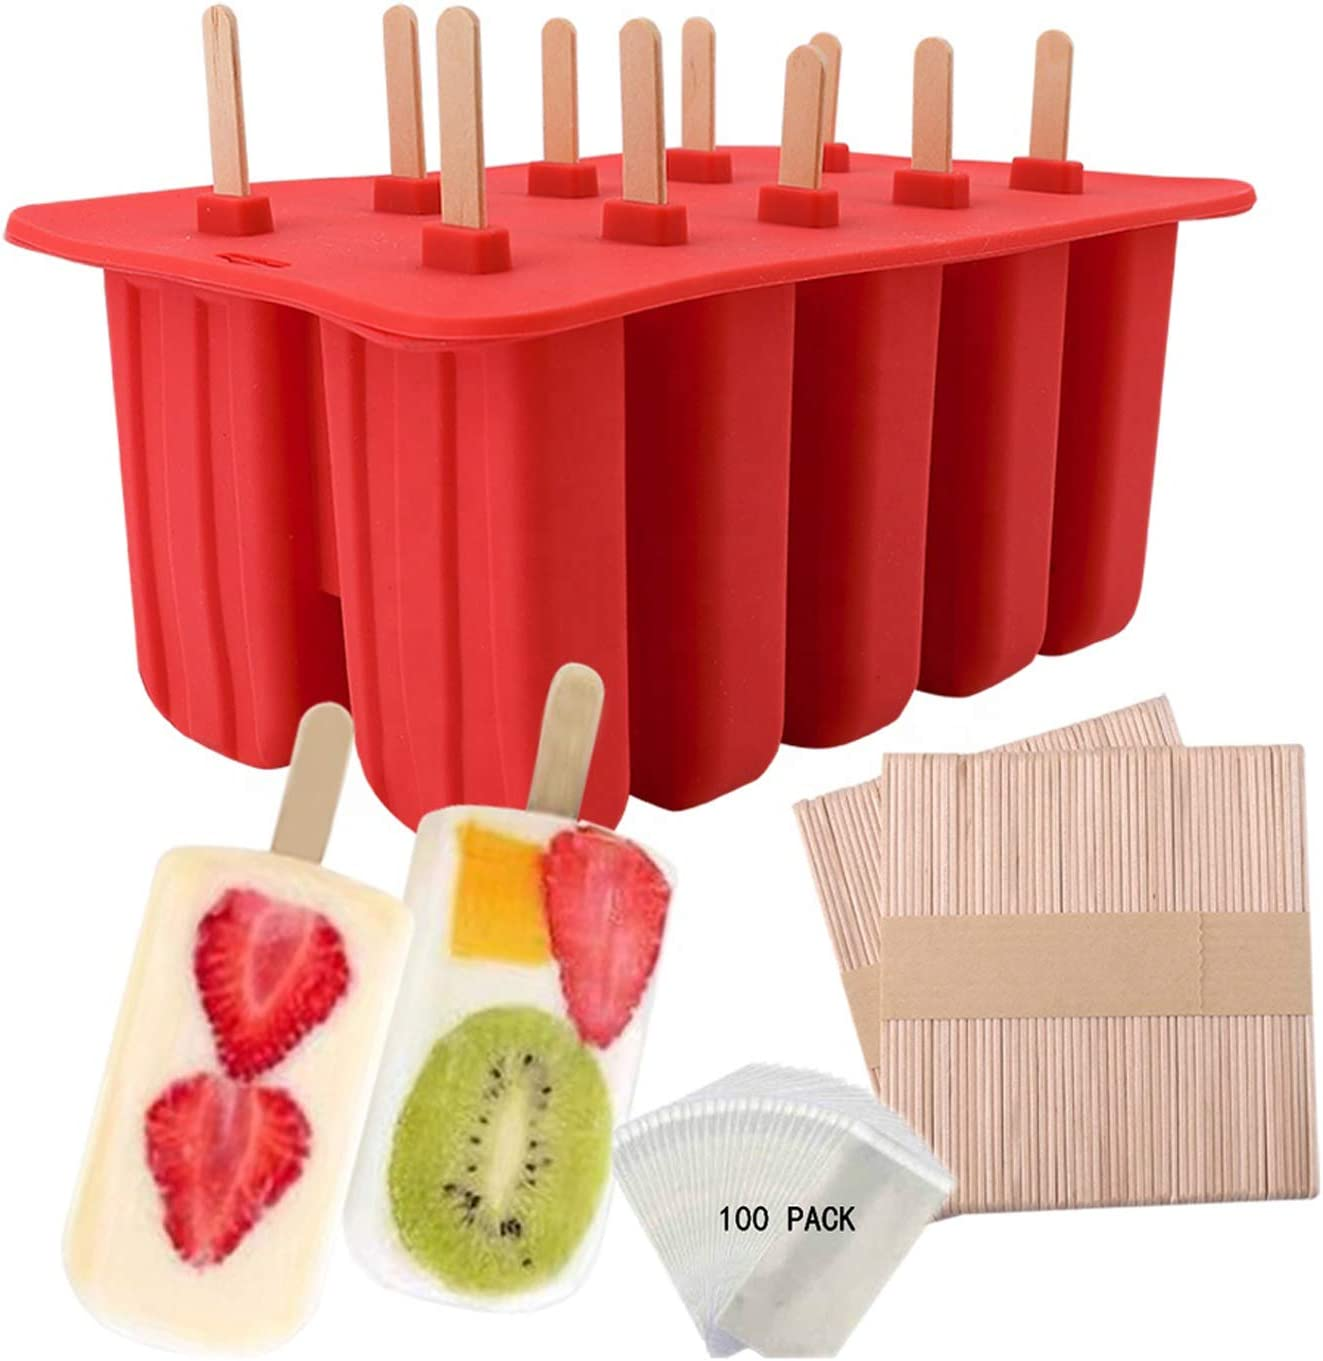 Waybesty 10 Cavities Homemade Popsicle Molds Shapes, Food Grade Silicone Frozen Ice Popsicle Maker-BPA Free, Contain 50 Popsicle Sticks, 50 Popsicle Bags